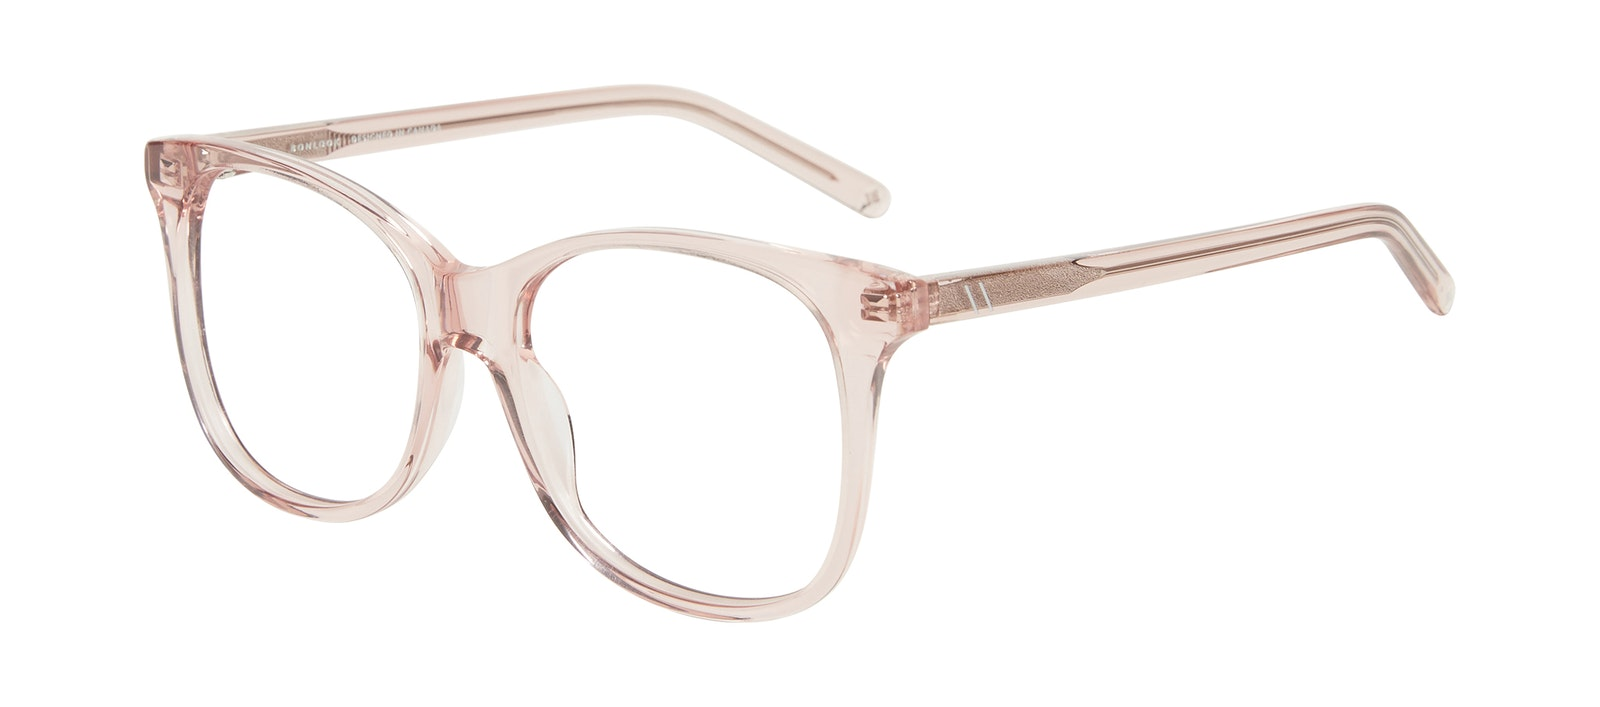 Affordable Fashion Glasses Square Eyeglasses Women Bloom Pink Tilt